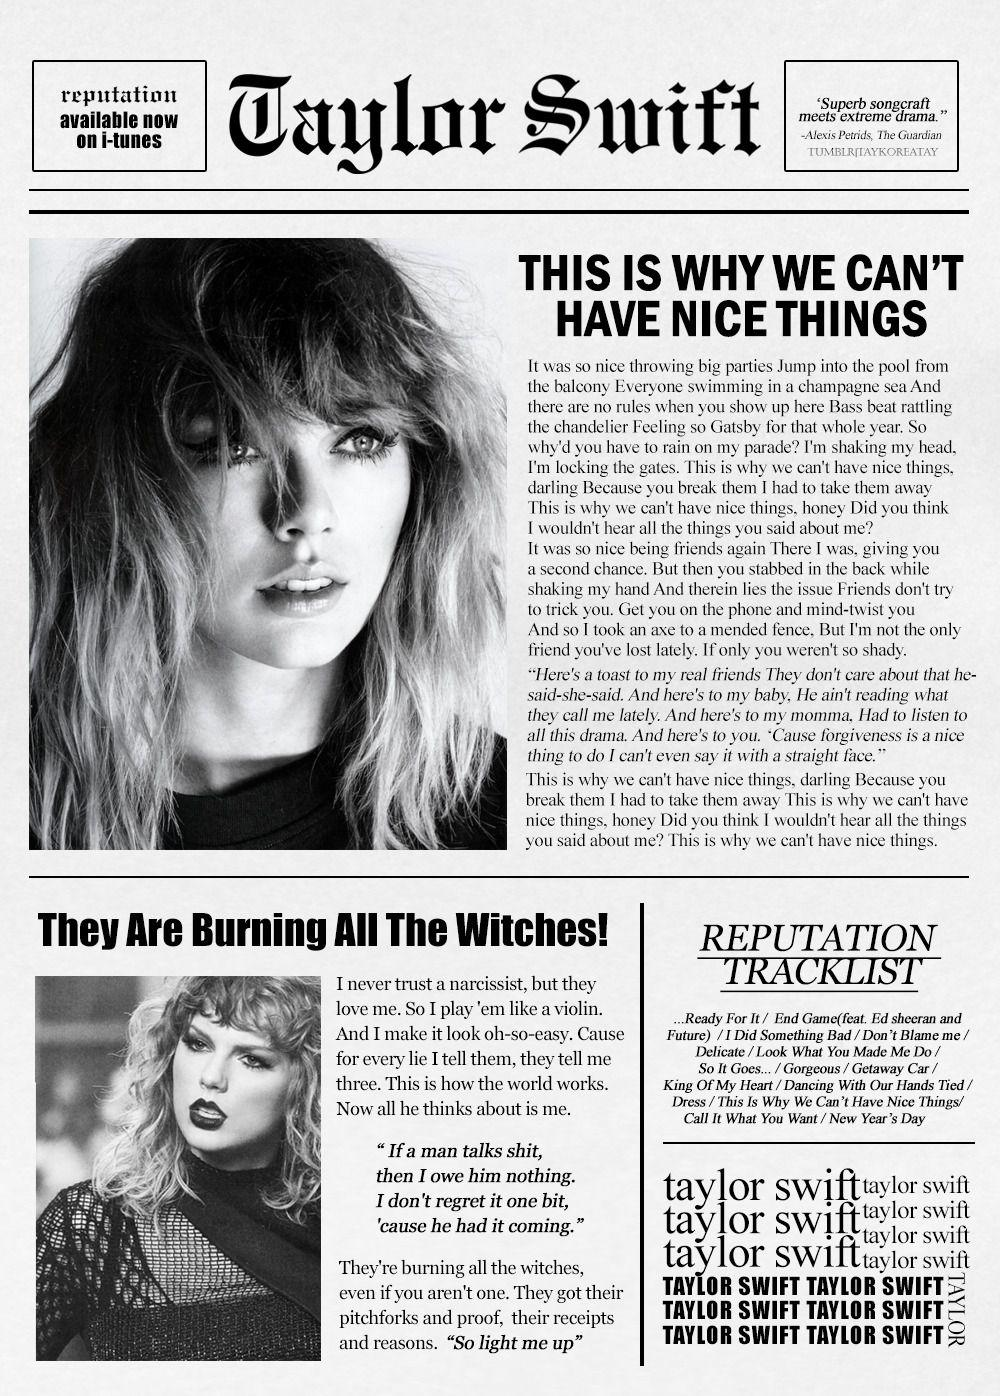 Reputation Are you ready for it? | Taylor swift | Pinterest ...